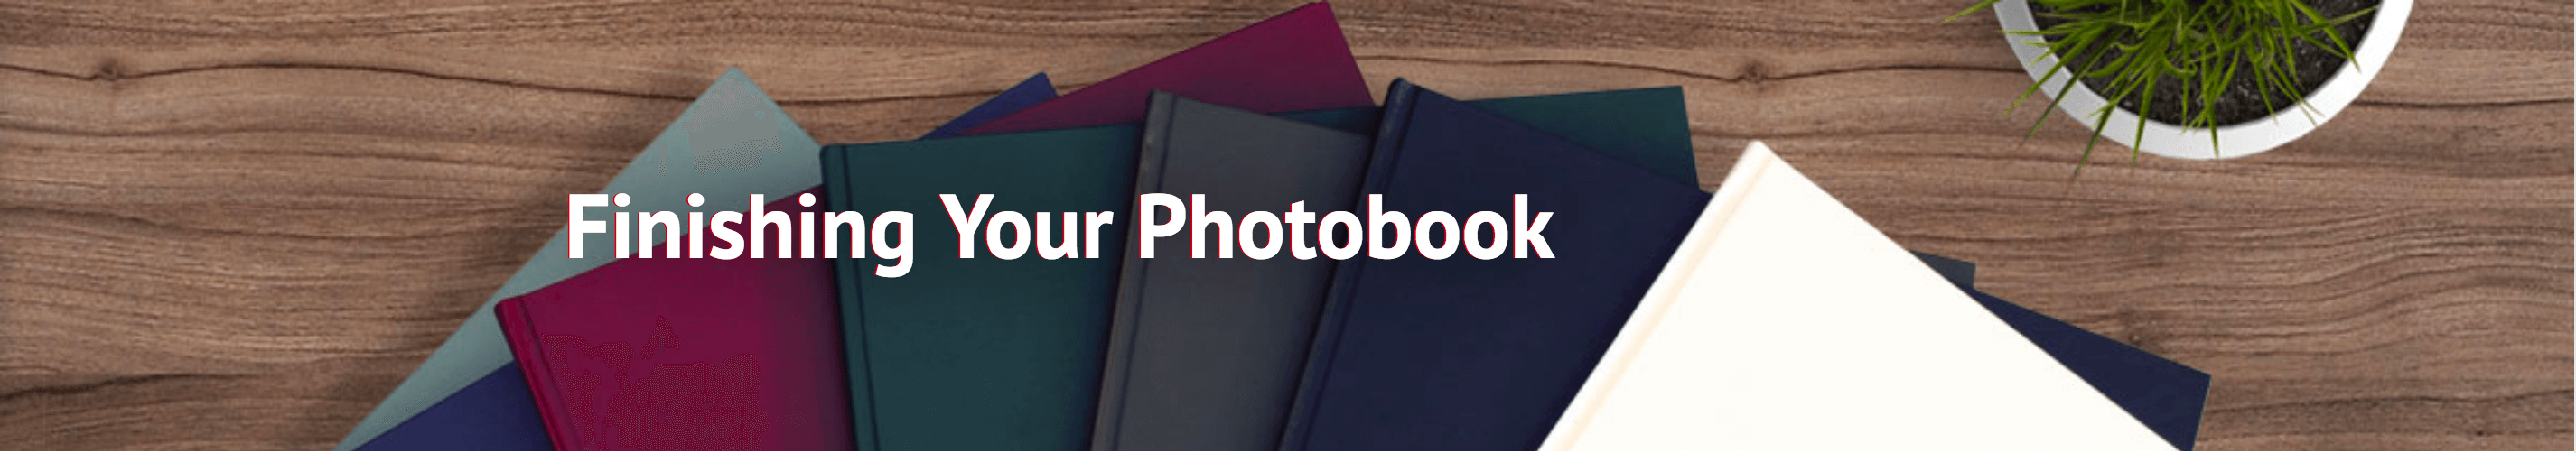 Finishing your photobook